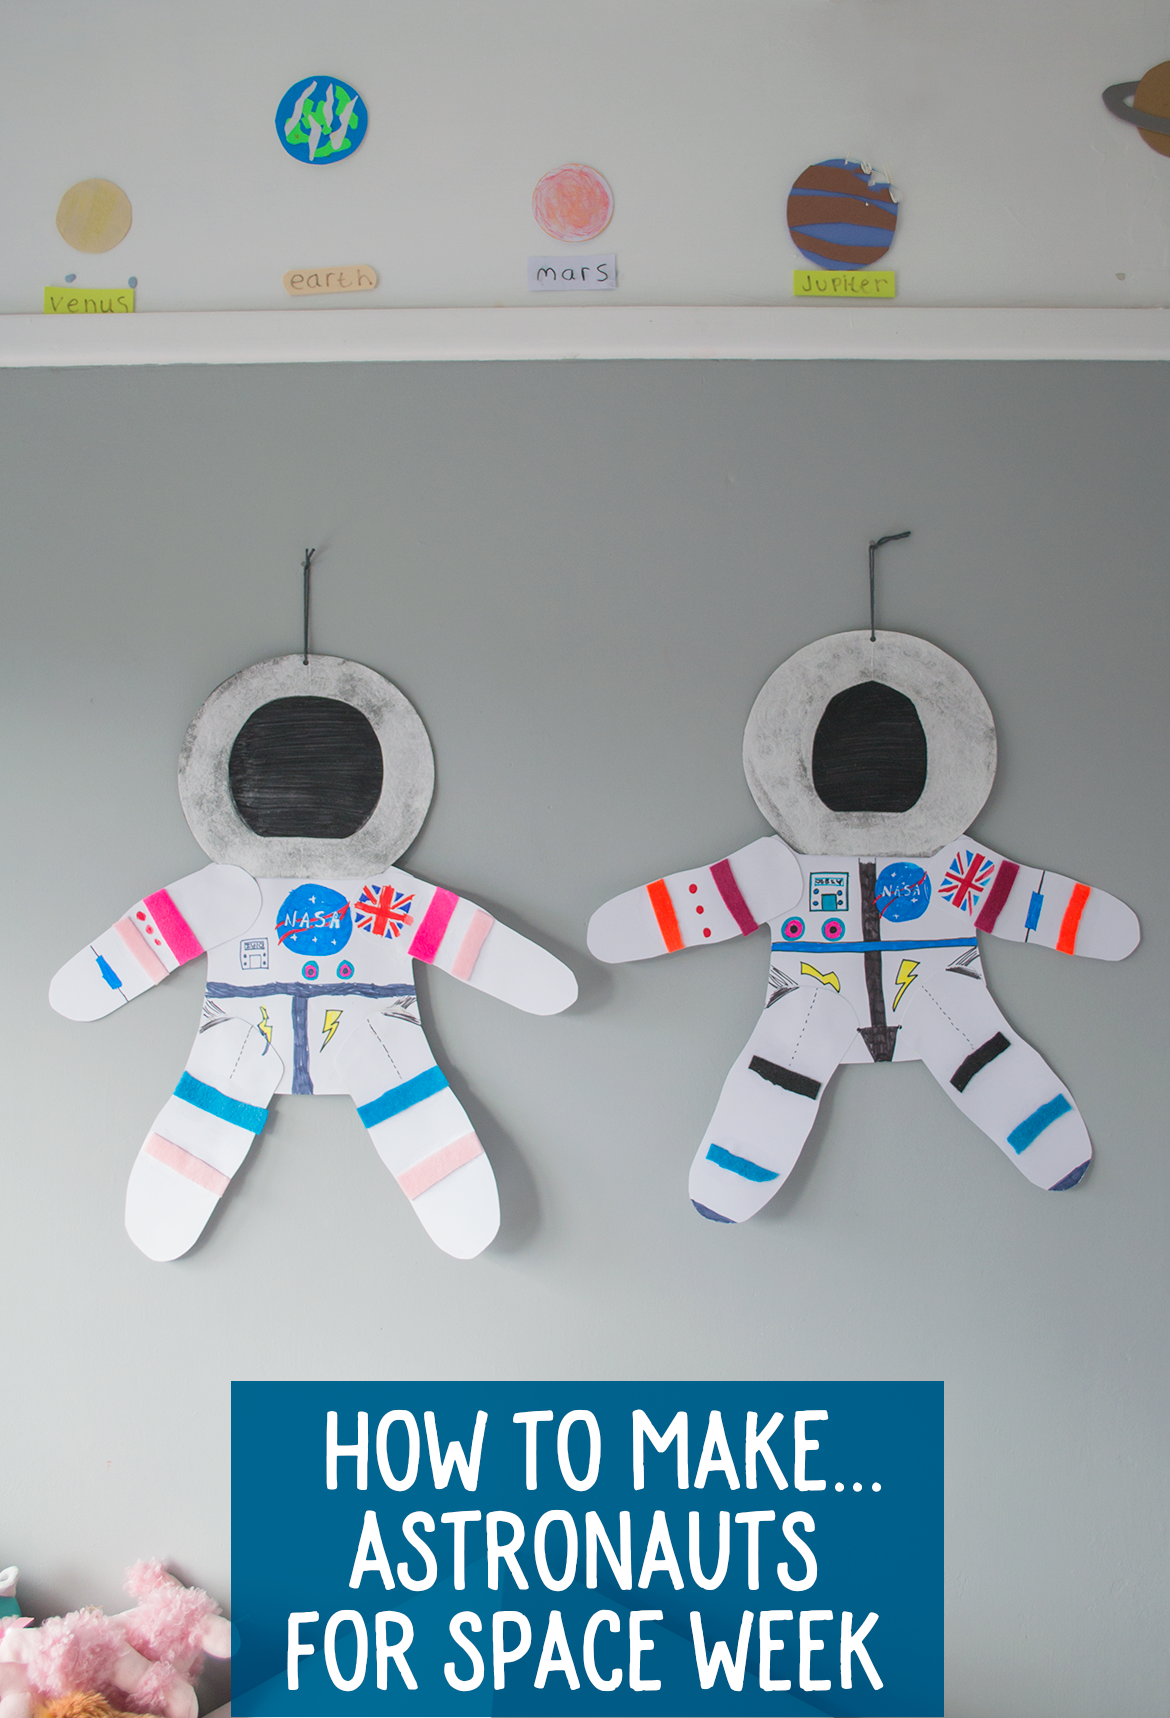 Kid's Crafts: Making Astronauts For Space Week - Let's Do ...